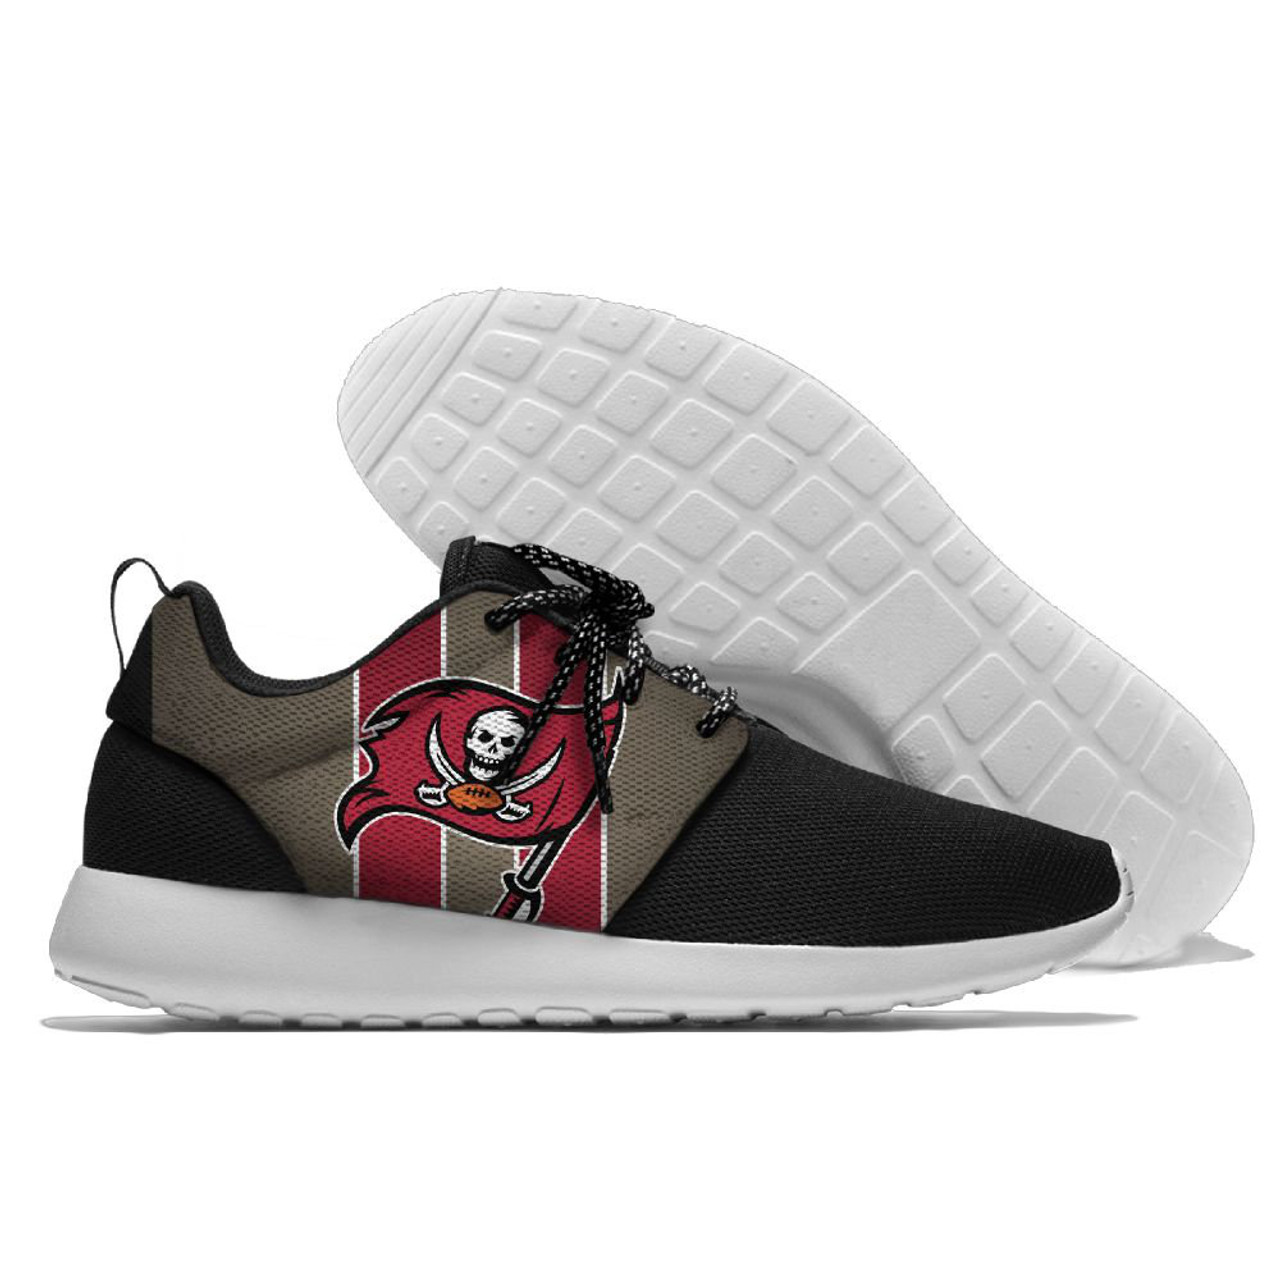 buy popular 13110 4d711 **(NEW-OFFICIALLY-LICENSED-N.F.L.TAMPA-BAY-BUCCANEERS-PREMIUM-RUNNING-SHOES/MENS-OR-WOMENS-ROSHE-STYLE,LIGHT-WEIGHT-SPORT-RUNNING-SHOES/WITH-OFFICIAL-...